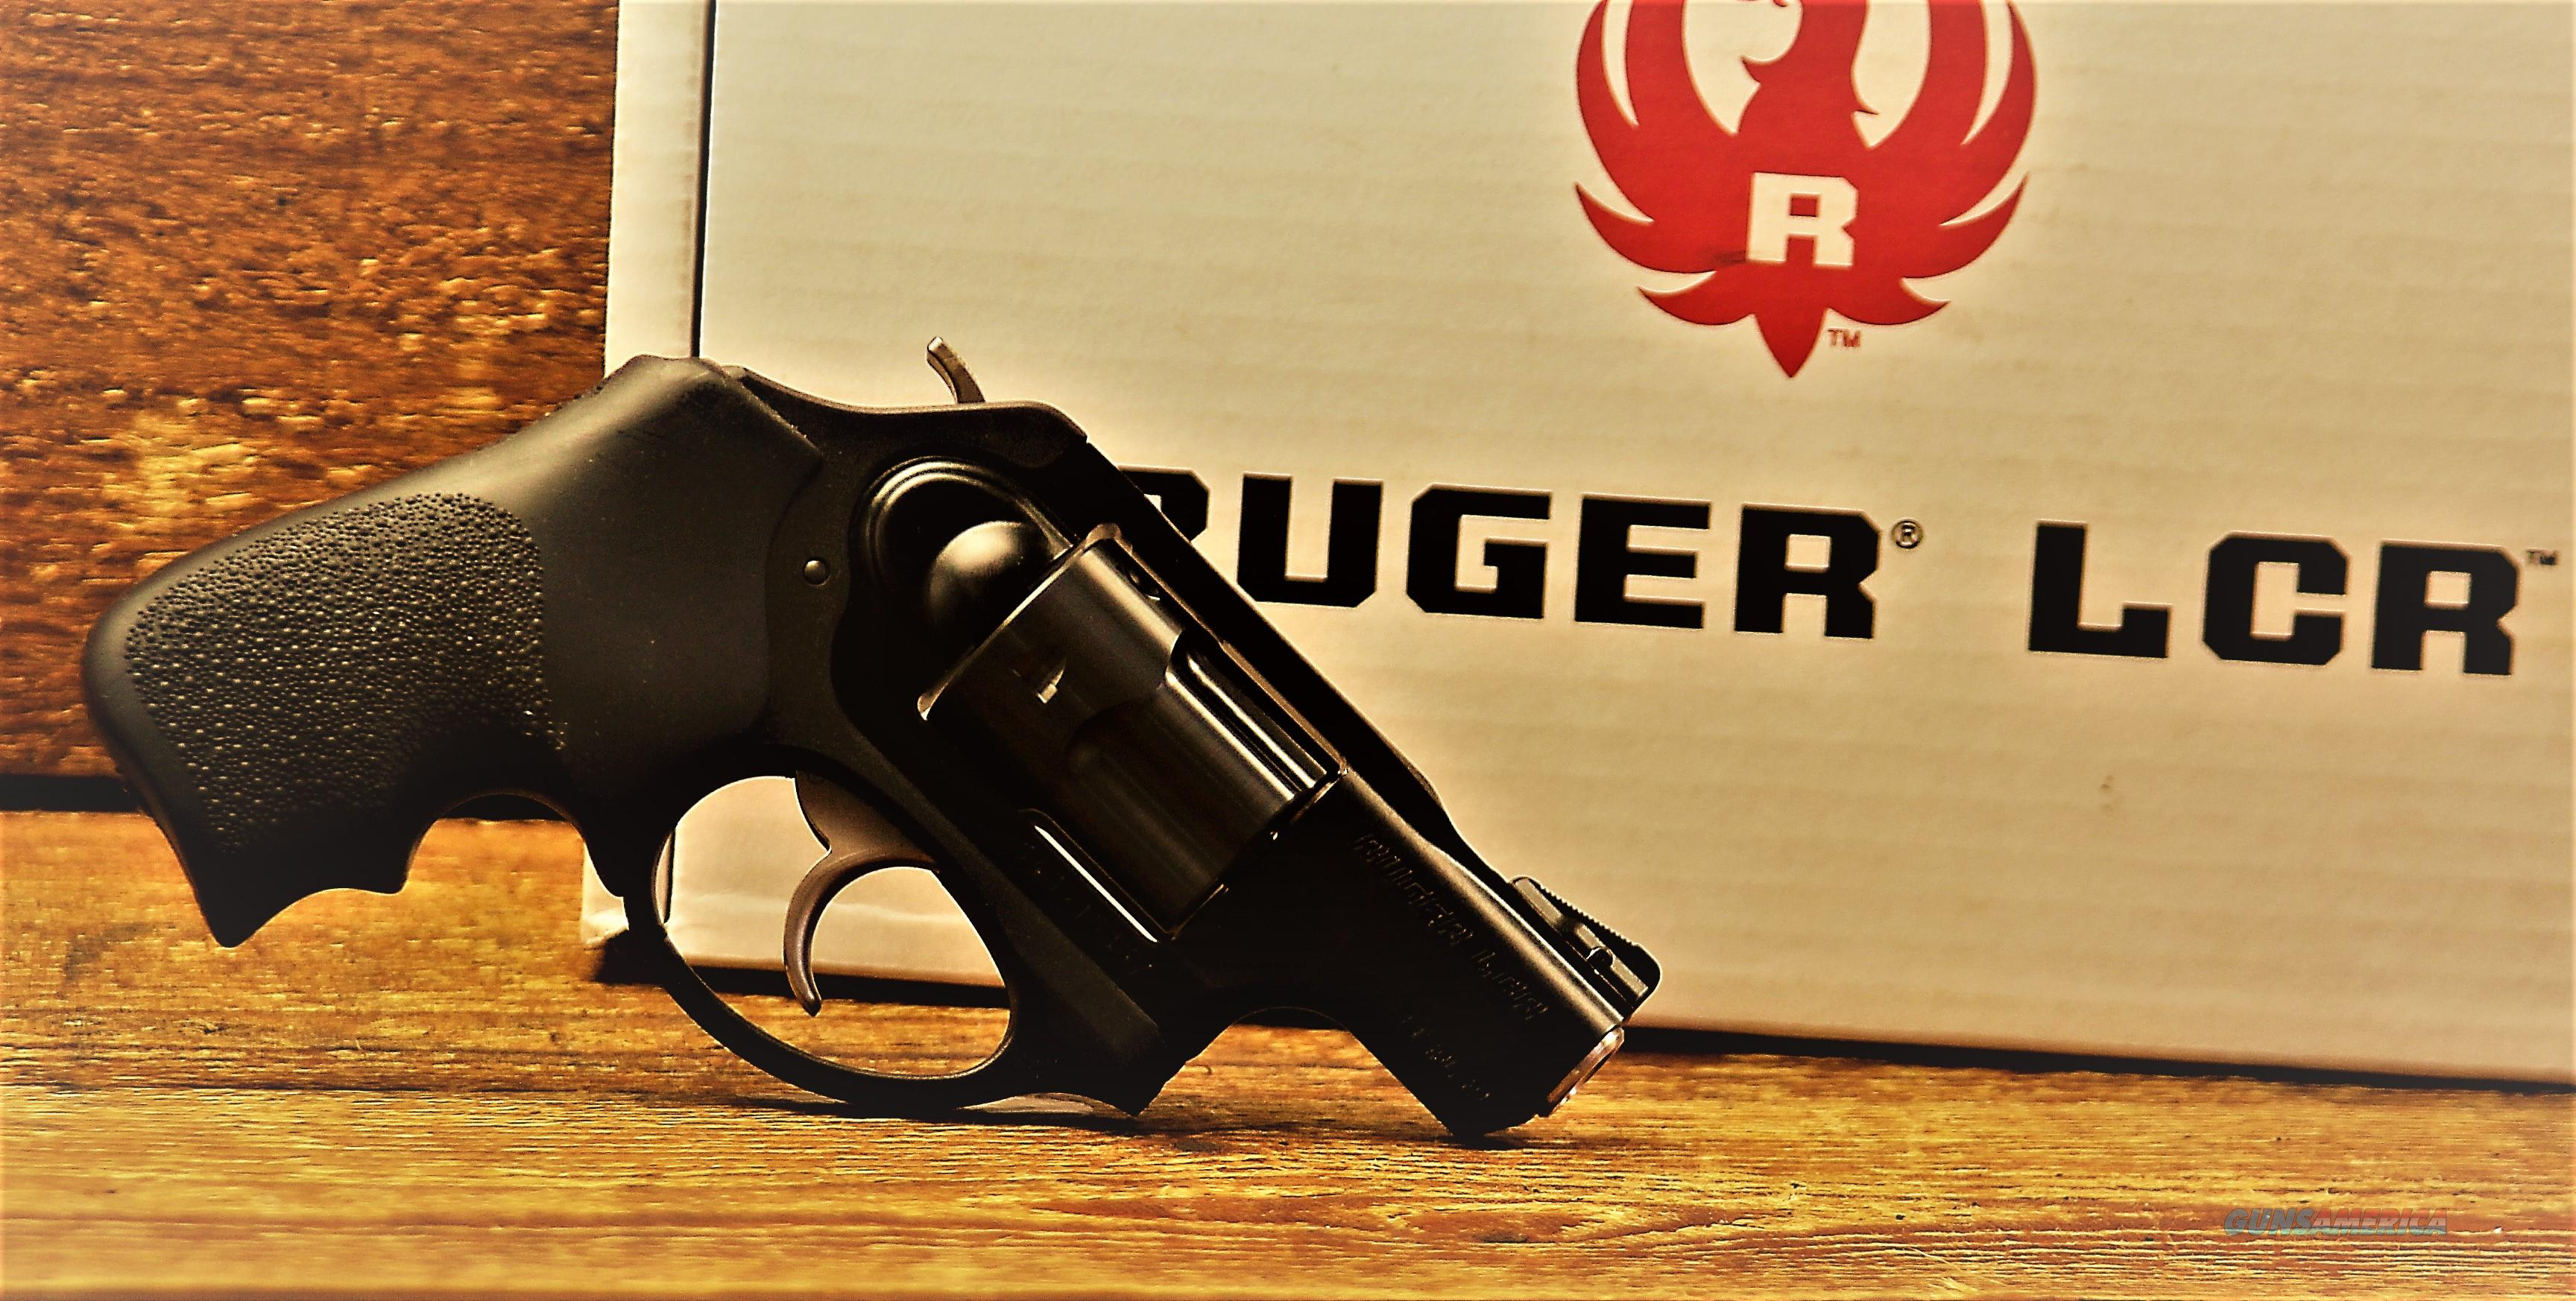 EASY PAY $47 DOWN LAYAWAY 12 MONTHLY  PAYMENTS Ruger LCRx Double Action Revolver/single action LCR .38 SPECIAL+P 5 Polymer 38 SPL 5430-RUG 5430 736676054305   Guns > Pistols > Ruger Double Action Revolver > LCR